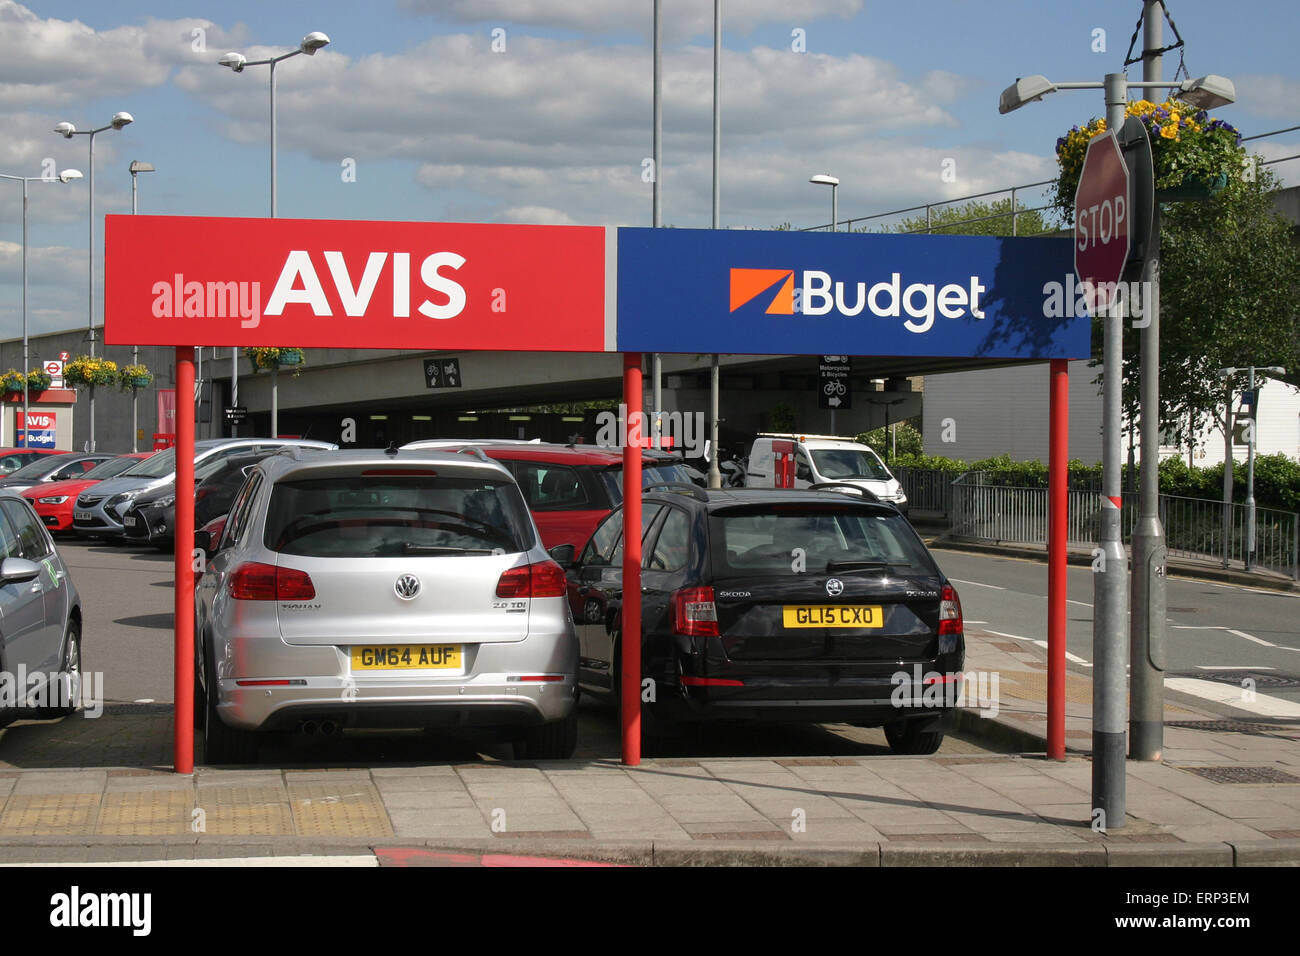 AVIS BUDGET CAR HIRE Stock Photo - Alamy